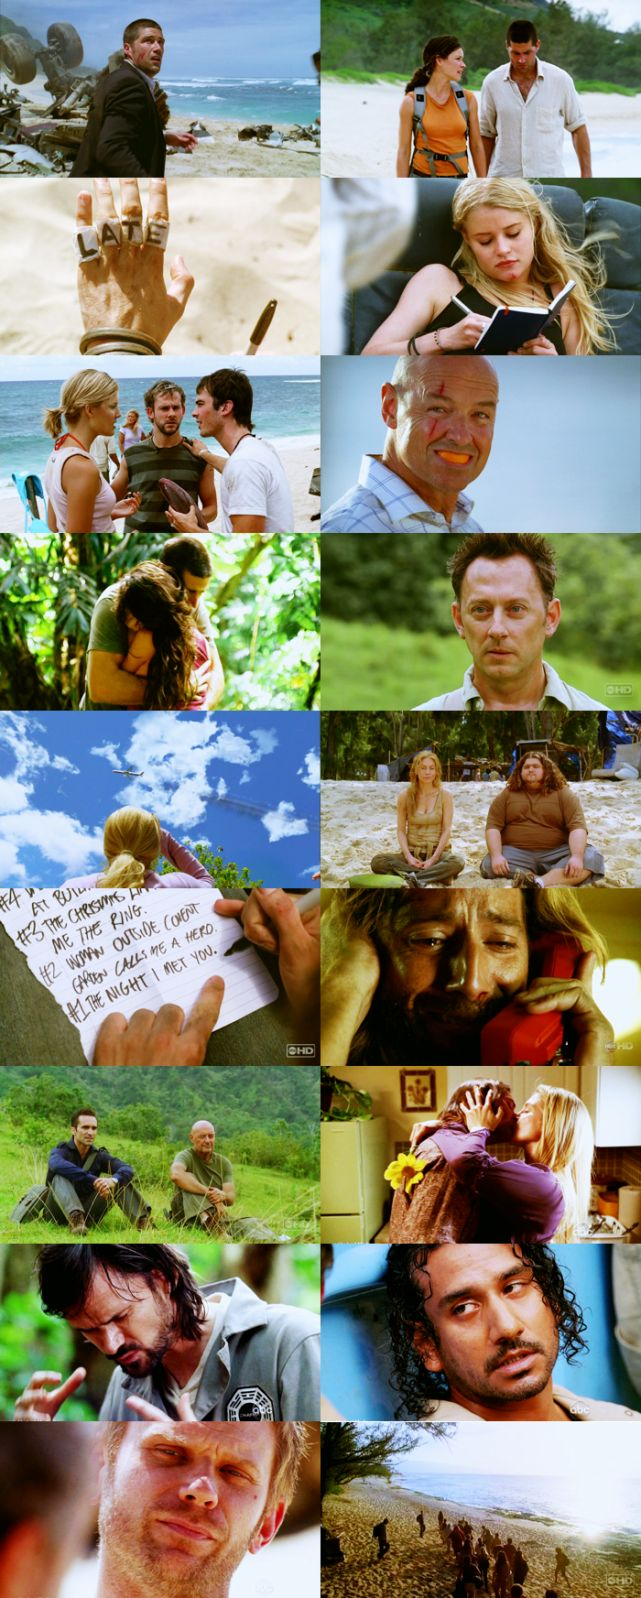 Lost - Bought all the seasons and gonna watch again. LOVE Jacob and wish they went in a different direction with him... but who cares? I have a good imagination and I can make it turn out just fine in the end! ;)